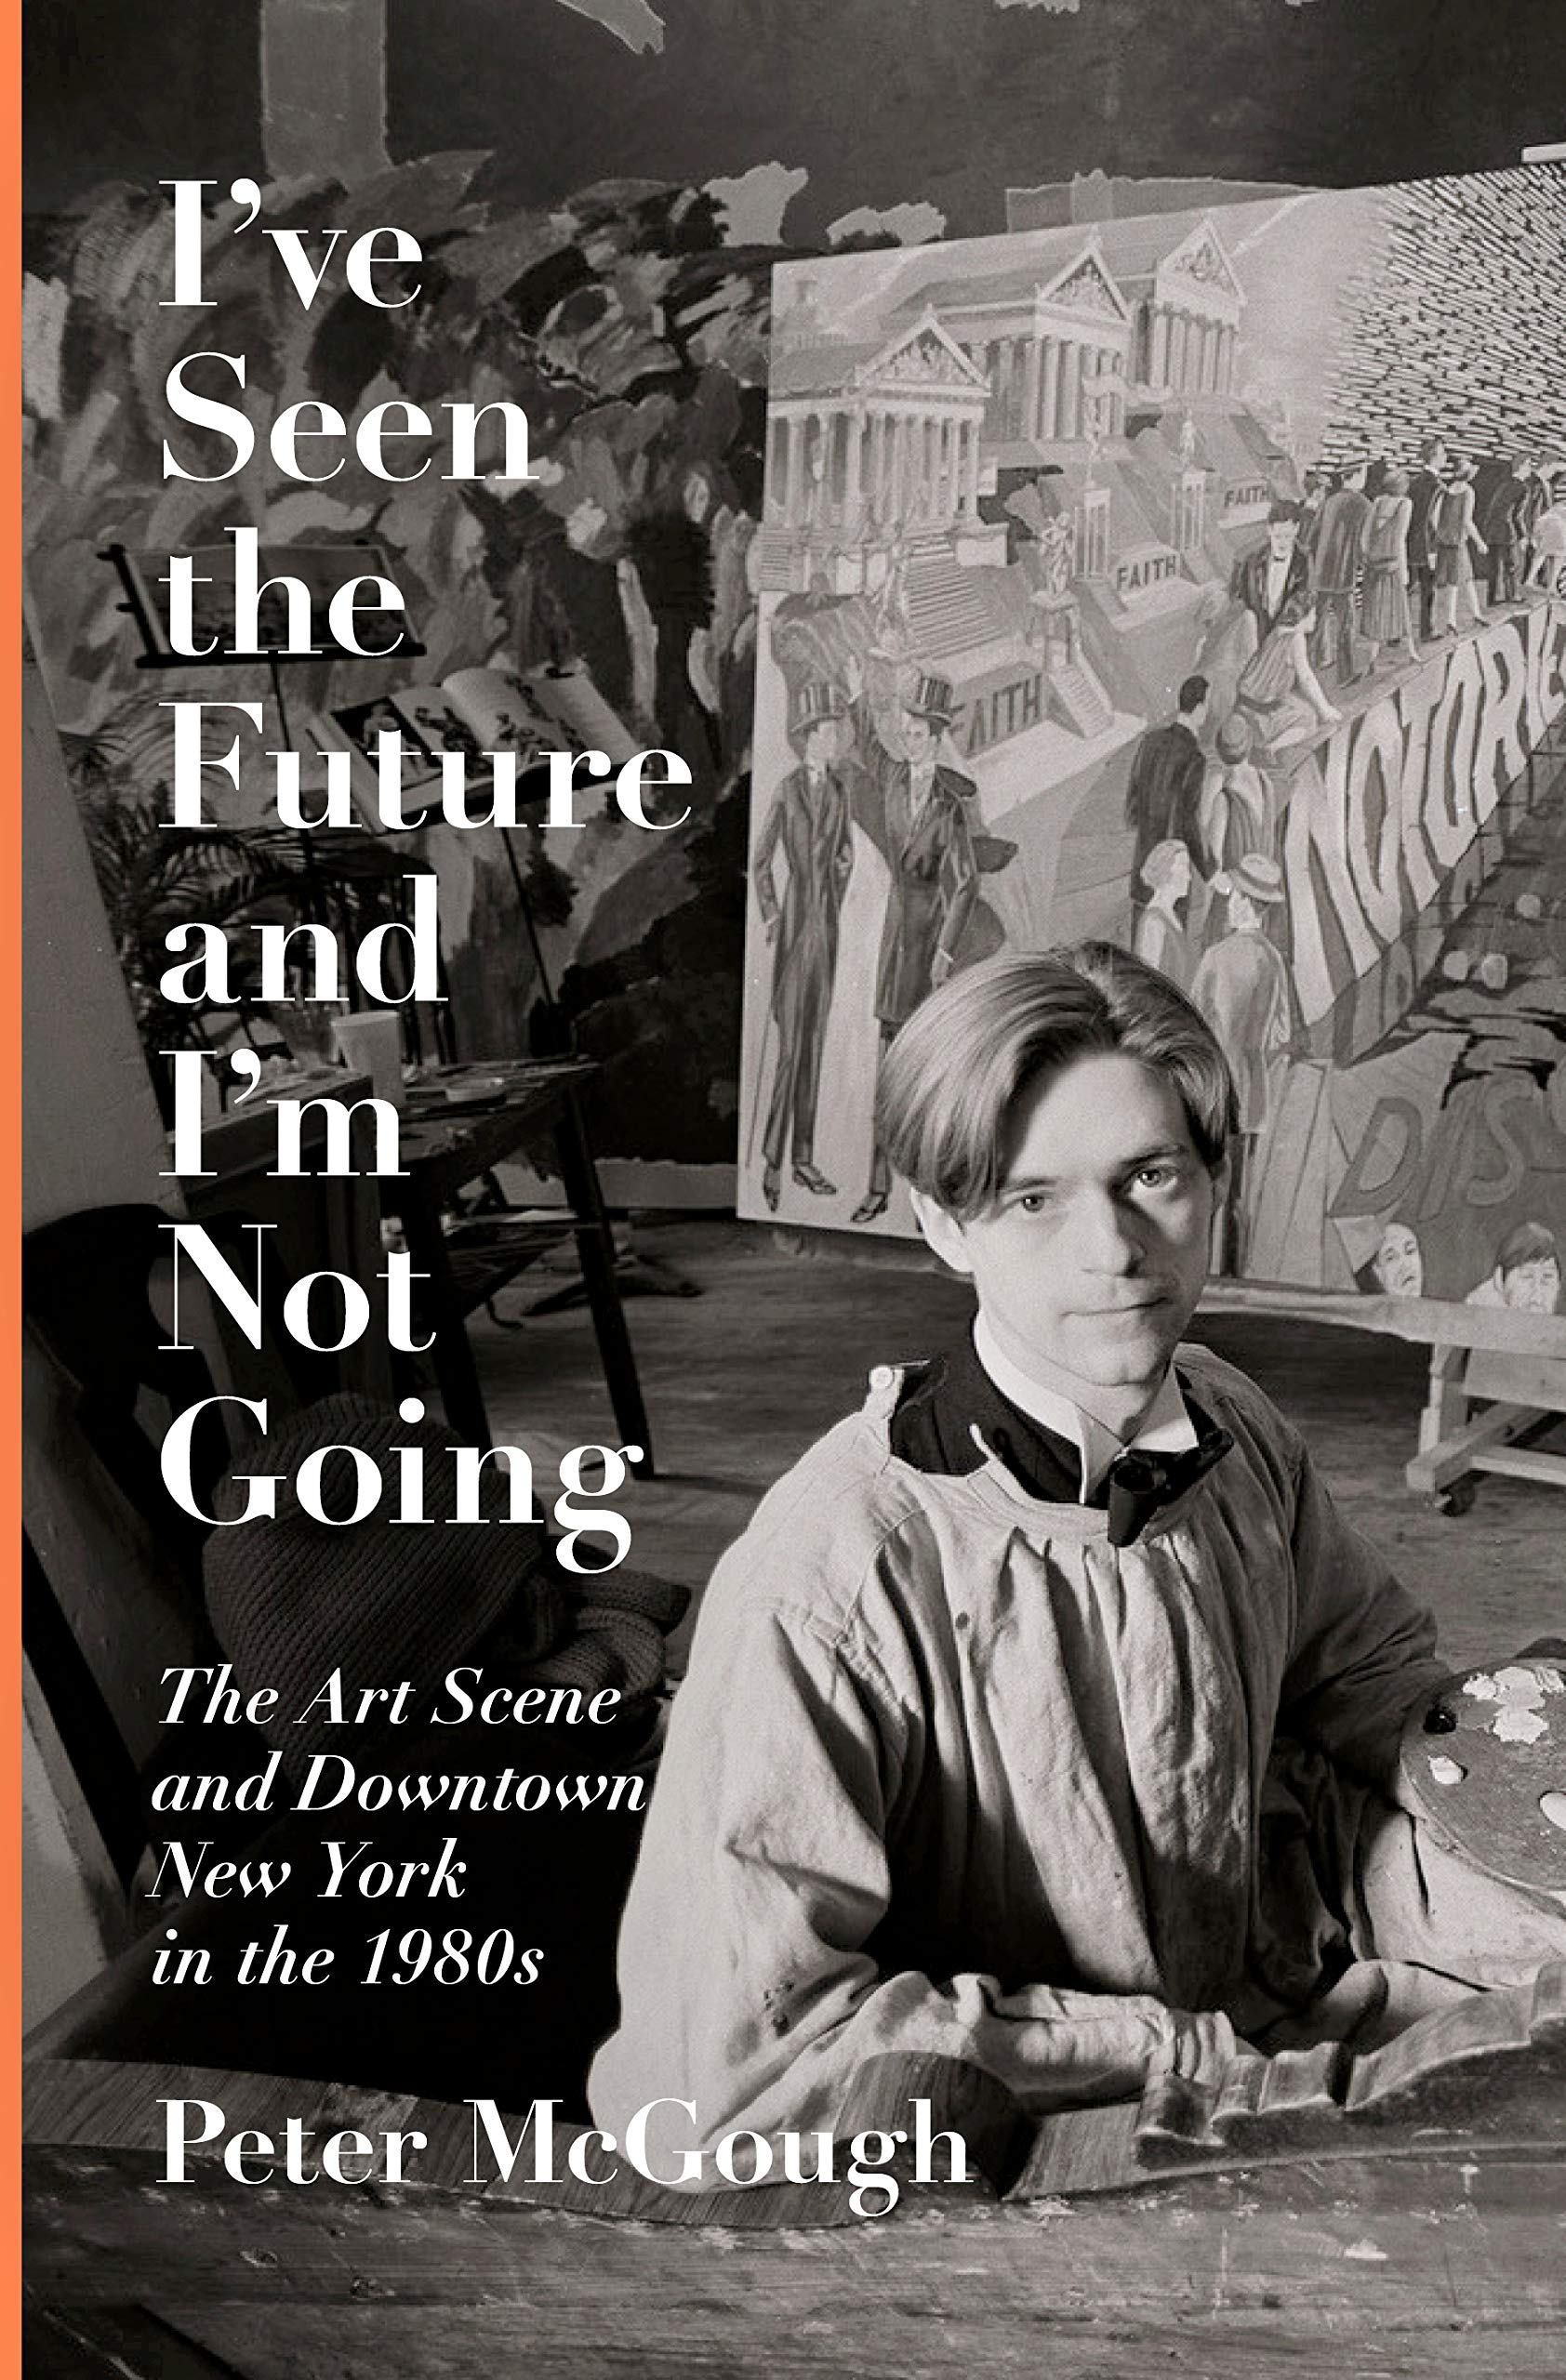 I've Seen the Future and I'm Not Going: The Art Scene and Downtown New York in the 1980s by Pantheon